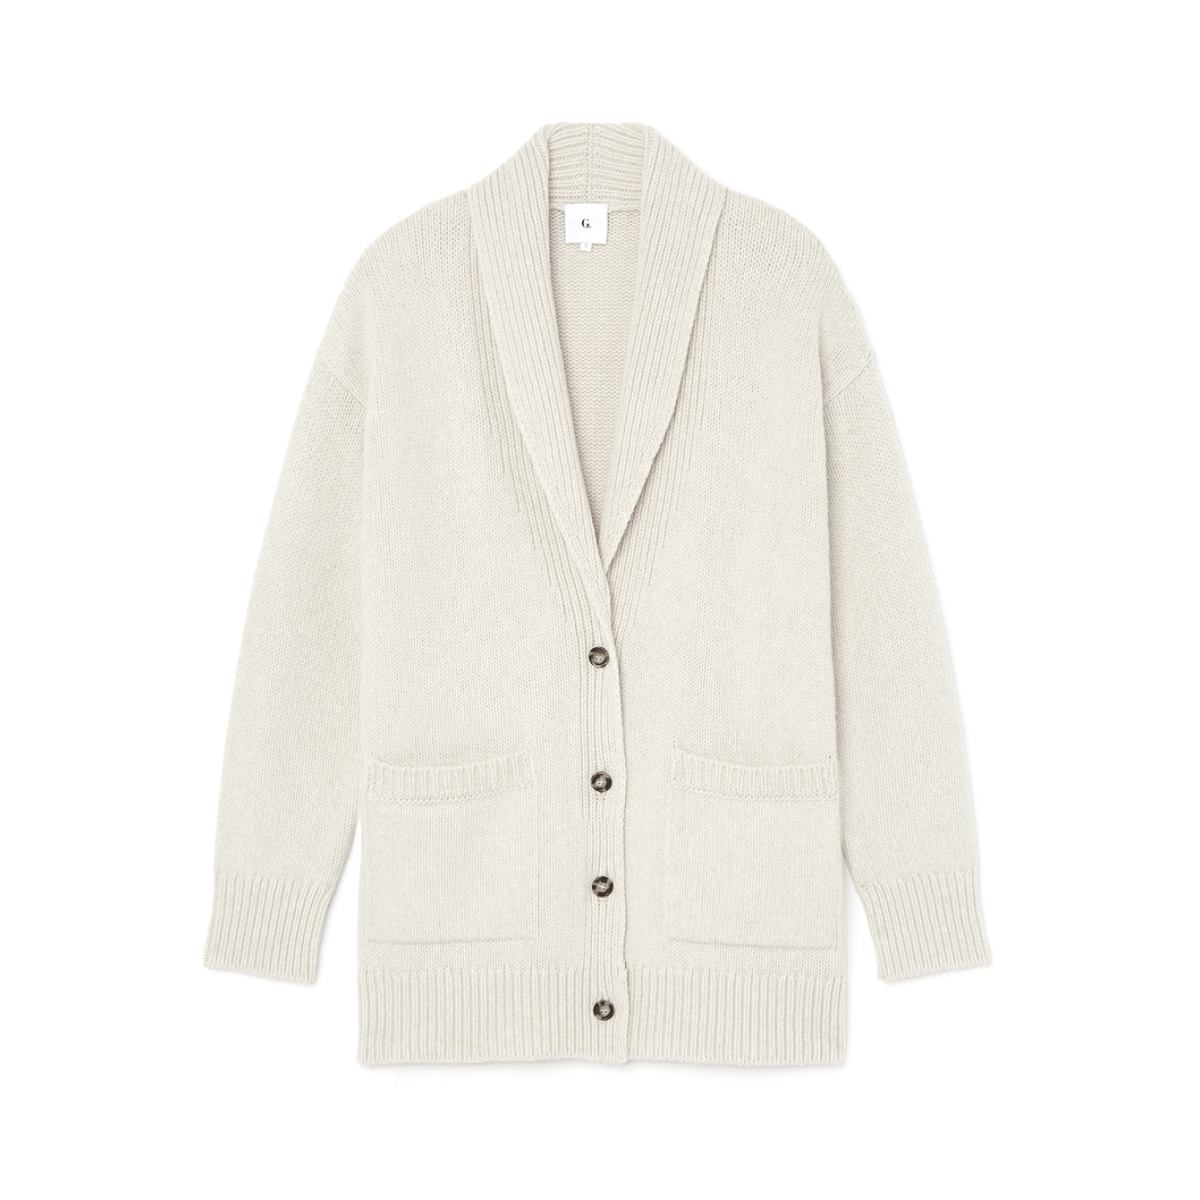 g.label cardigan